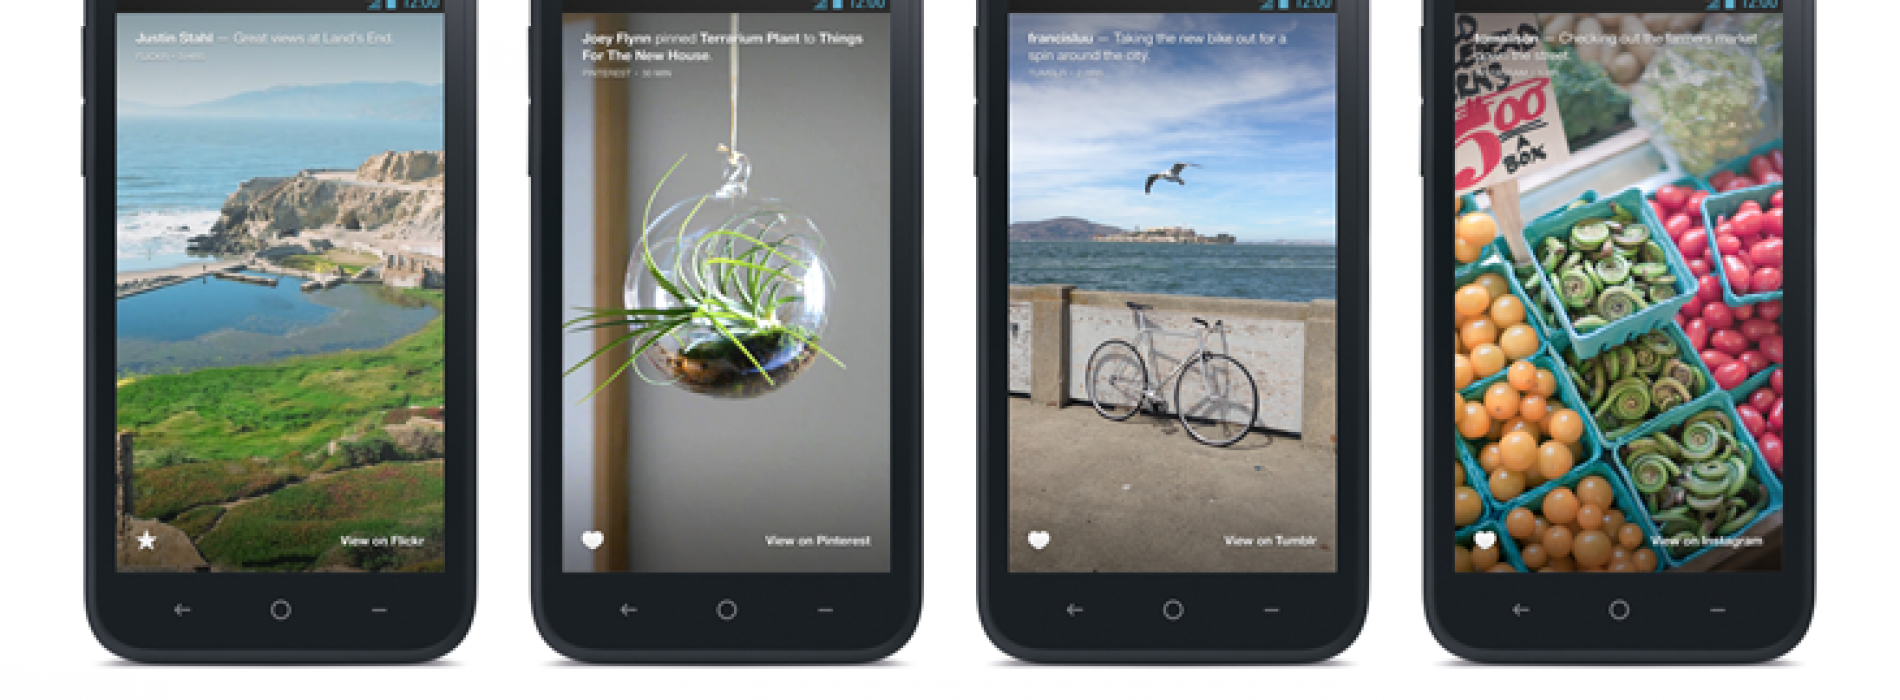 Facebook beta brings Flickr, Pinterest, Instagram, and Tumblr to 'Home' experience